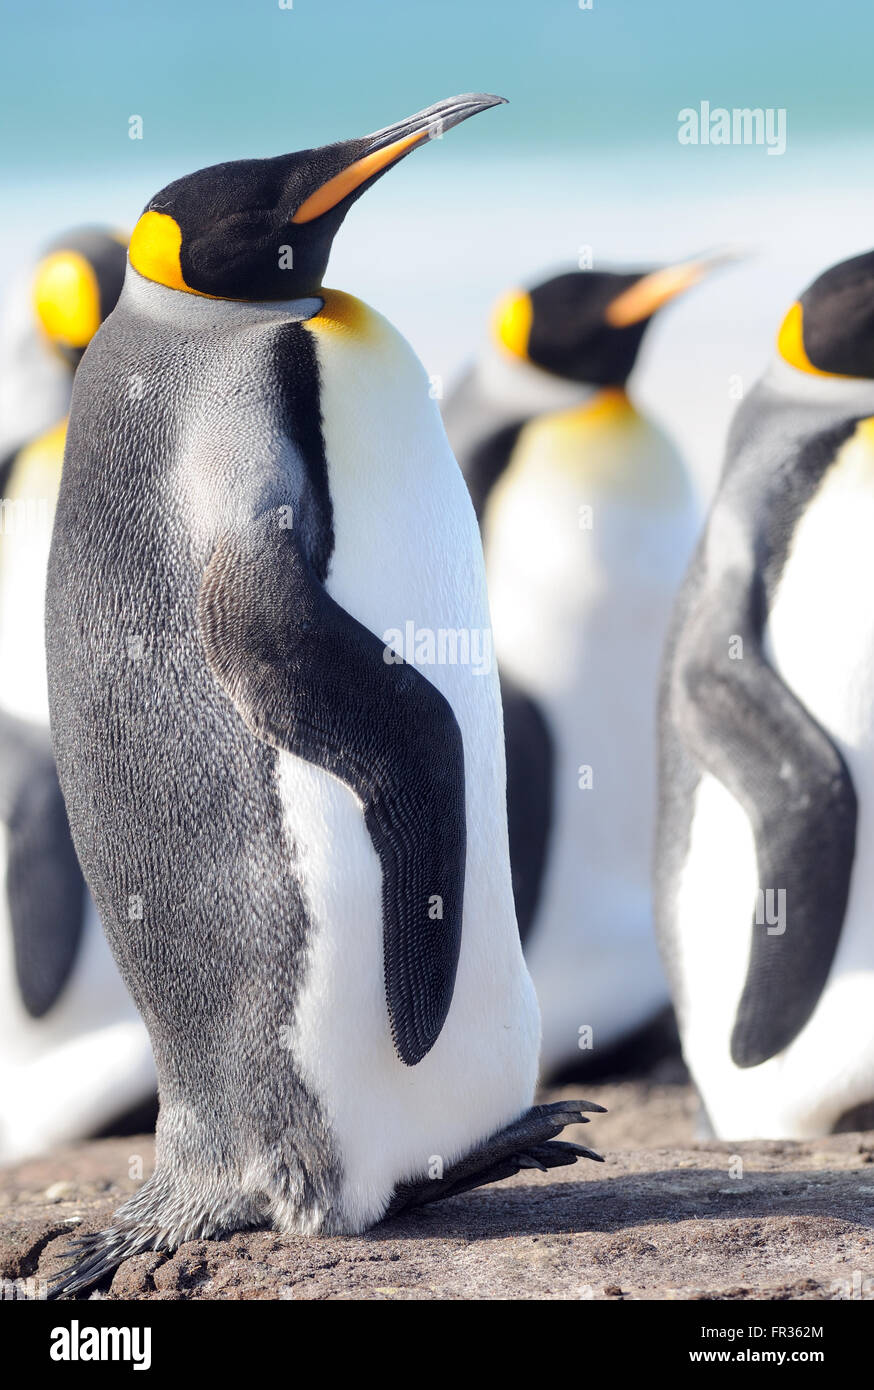 A King penguin (Aptenodytes patagonicus) Leans back on its short, stiff tail. Saunders Island, Falkland Islands. - Stock Image